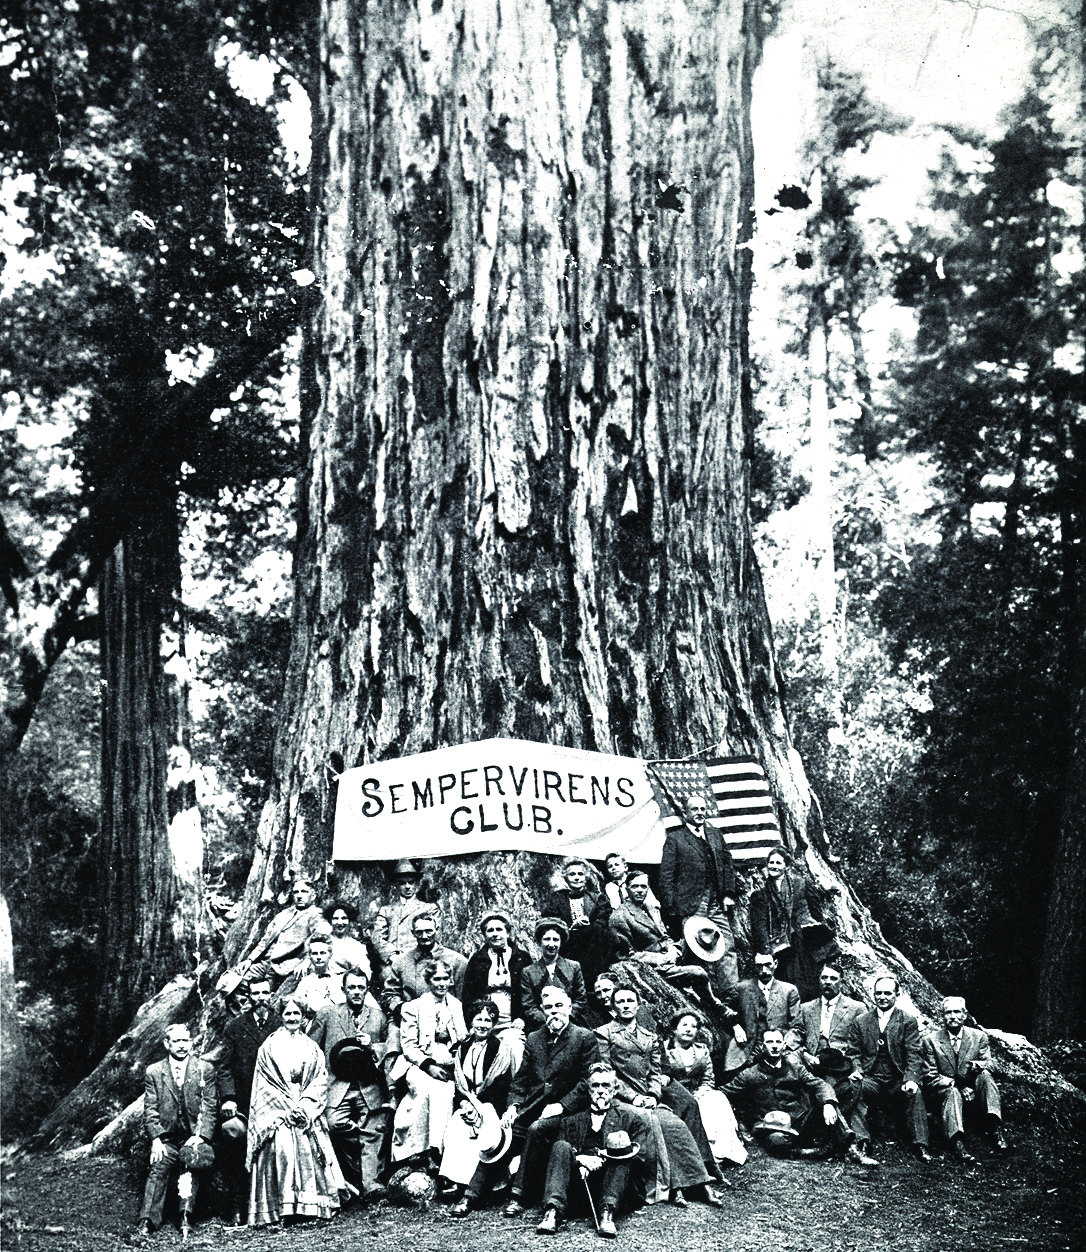 Founding of Sempervirens Club BBRSP